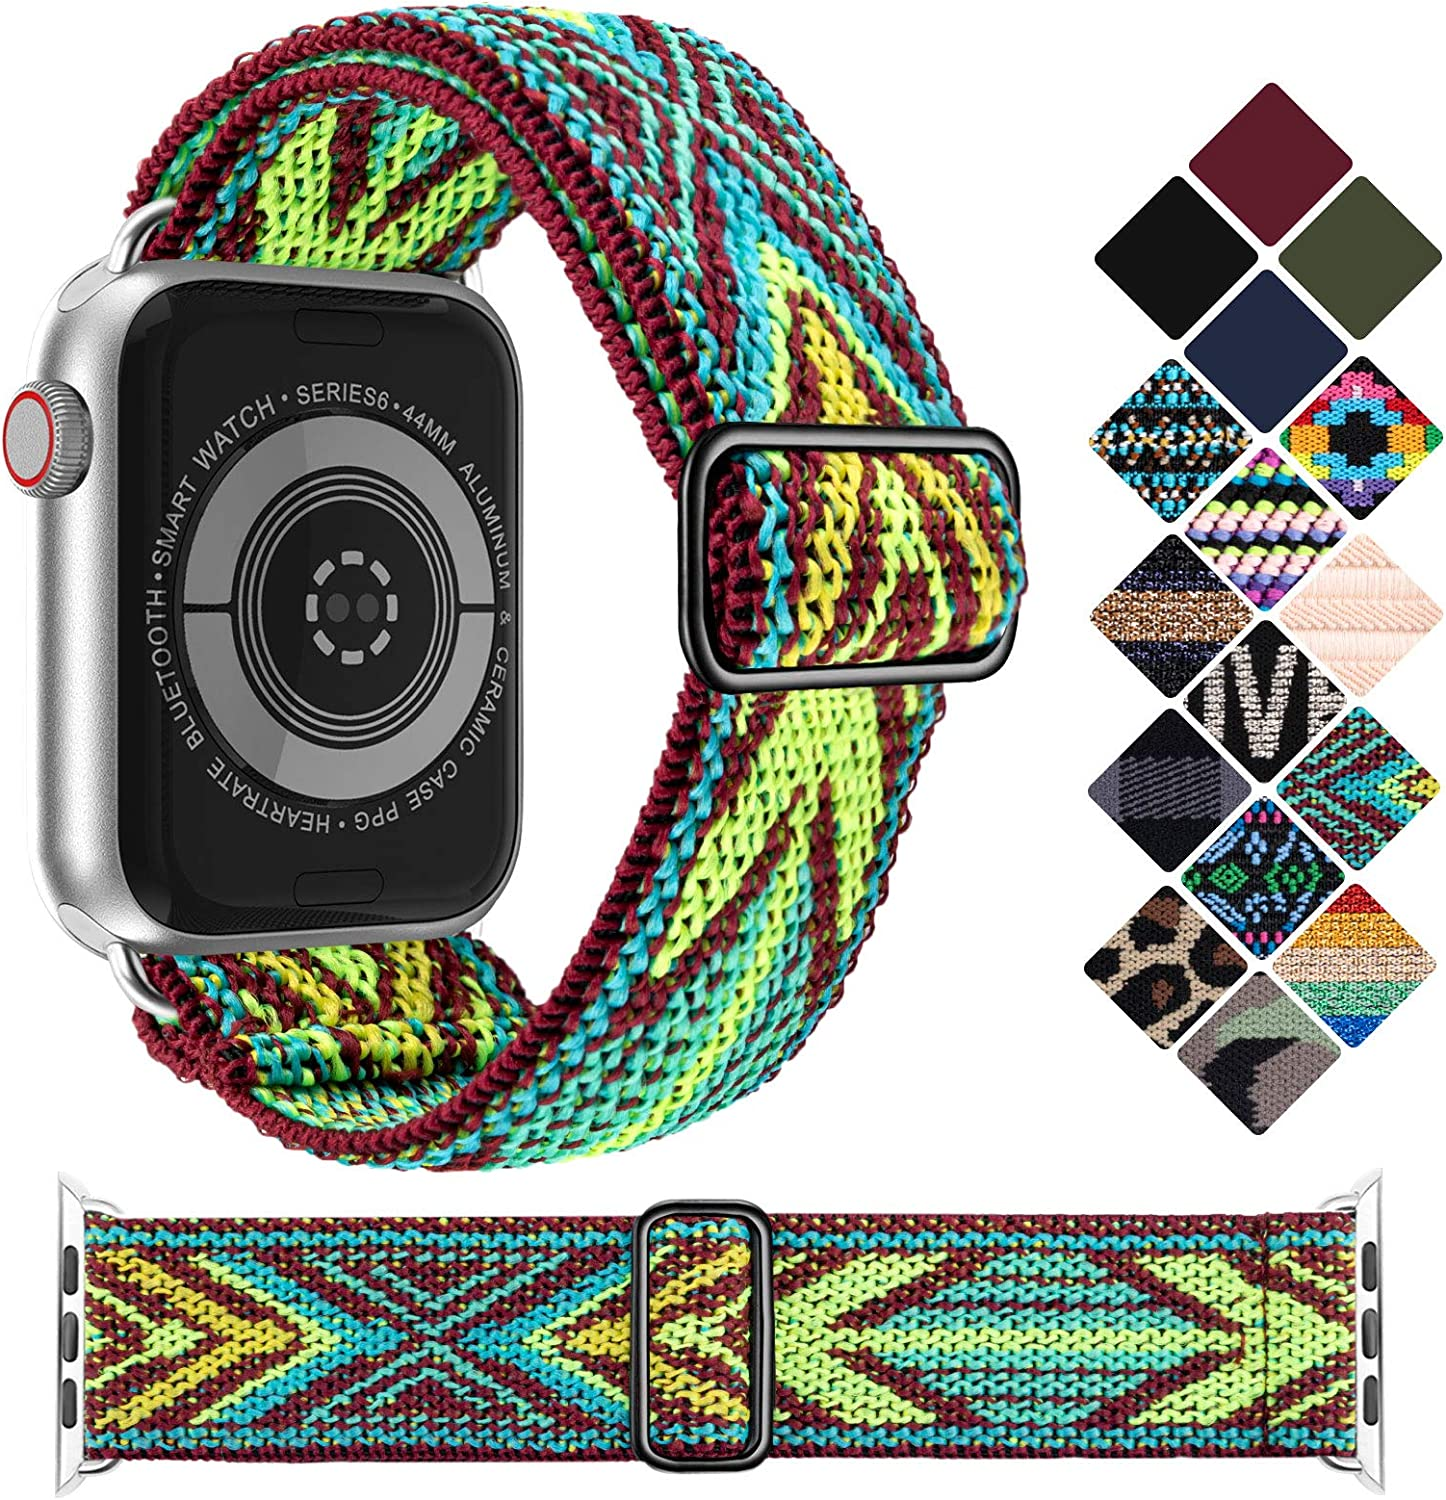 KRISVI Nylon Braided Solo Loop Apple Watch Bands 38mm 40mm, Patterned Adjustable Elastic Apple Watch Bands Women Men, Compatible with iWatch Series 6 5 4 3 2 1 SE(Green Arrow 38/40)